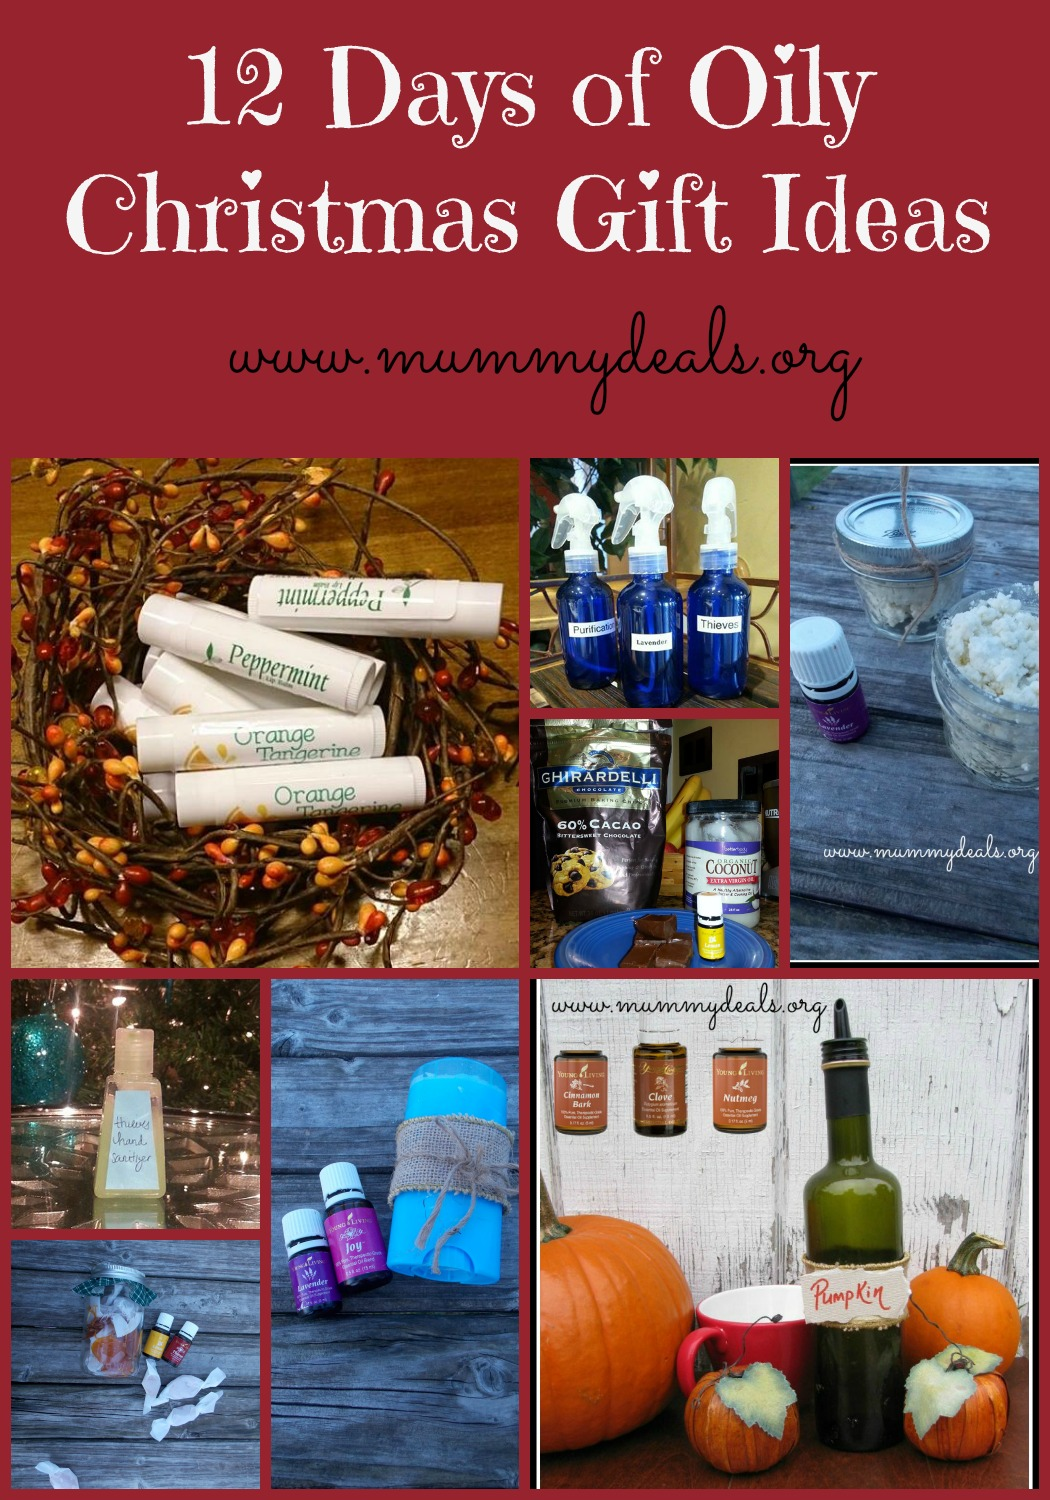 12 Days of Oily Christmas Gift Ideas